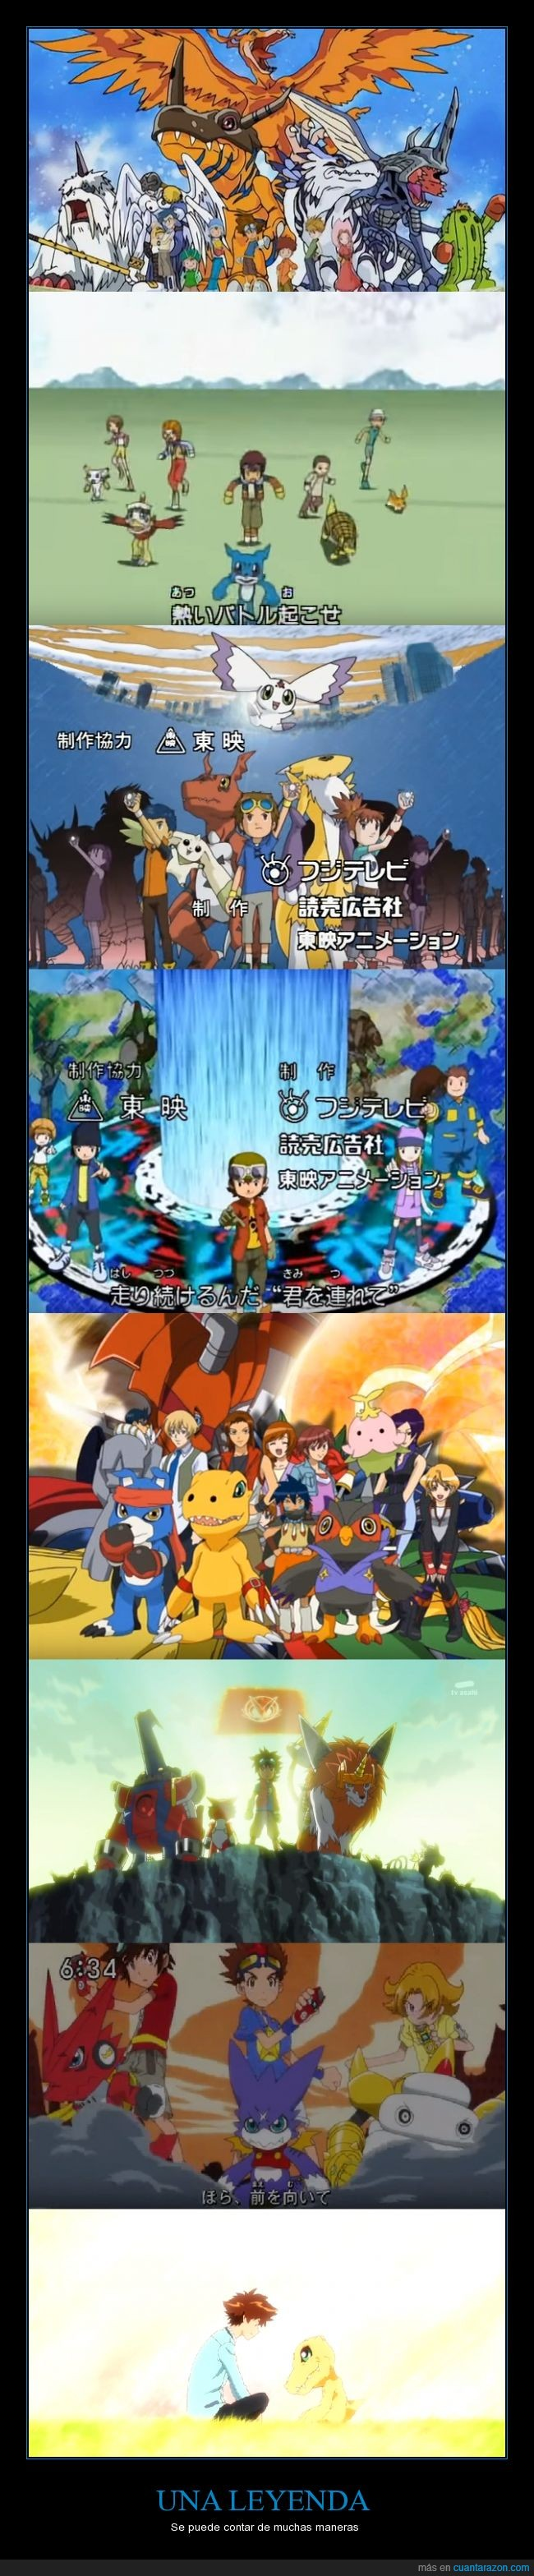 02,Adventure,Adventure Tri,Digimon,Frontier,Hunters,Savers,Tamers,Xros Wars